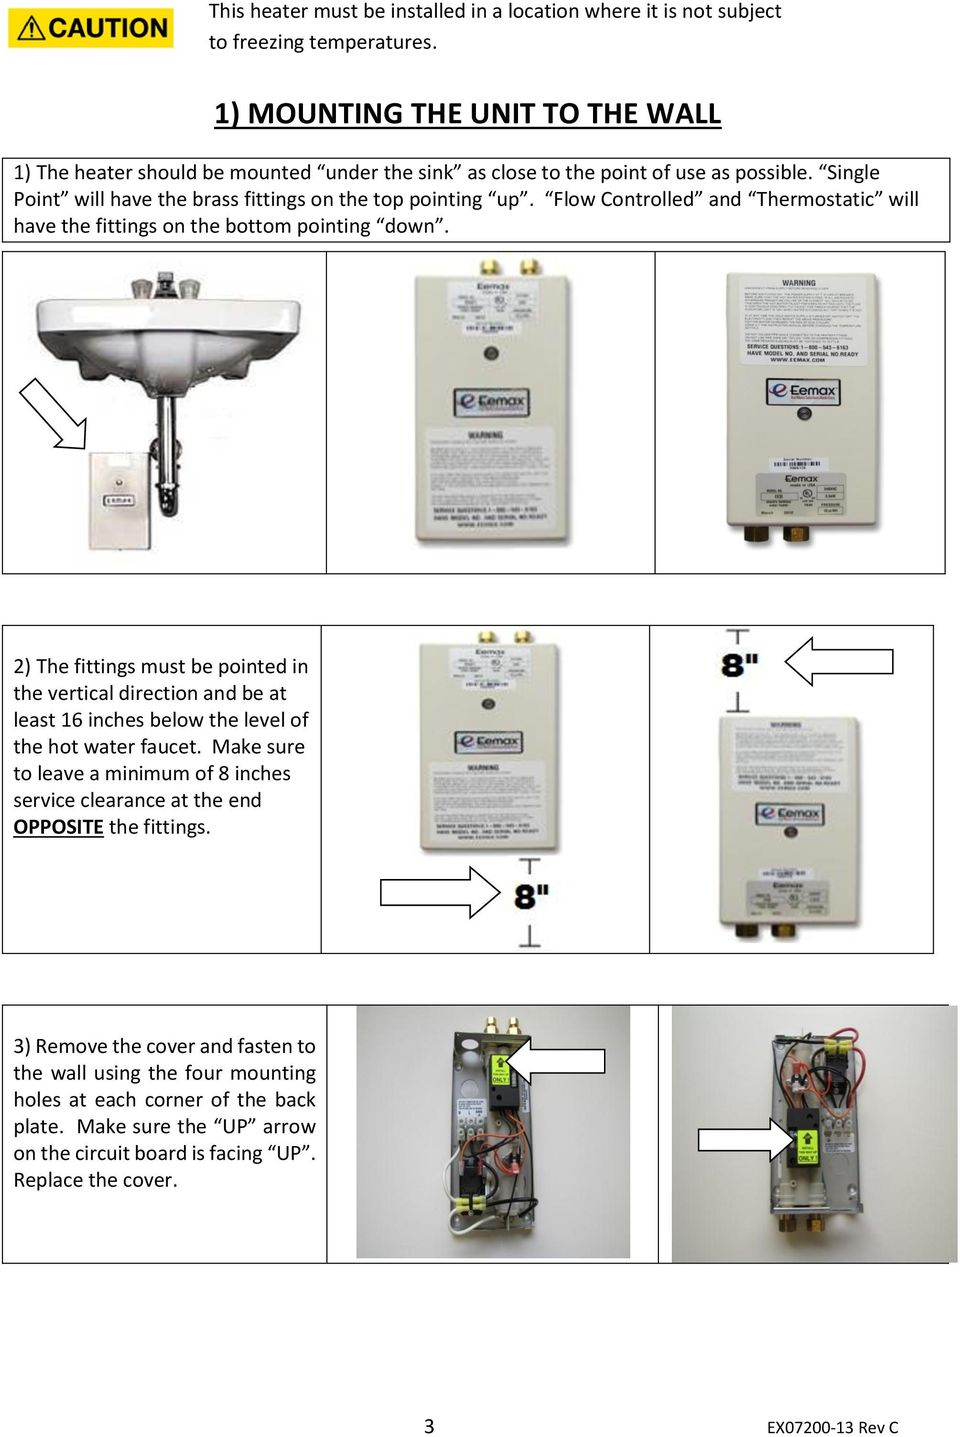 Installation Guide And Owner S Manual Pdf Continuity Tester Circuit Searscom Flow Controlled Thermostatic Will Have The Fittings On Bottom Pointing Down